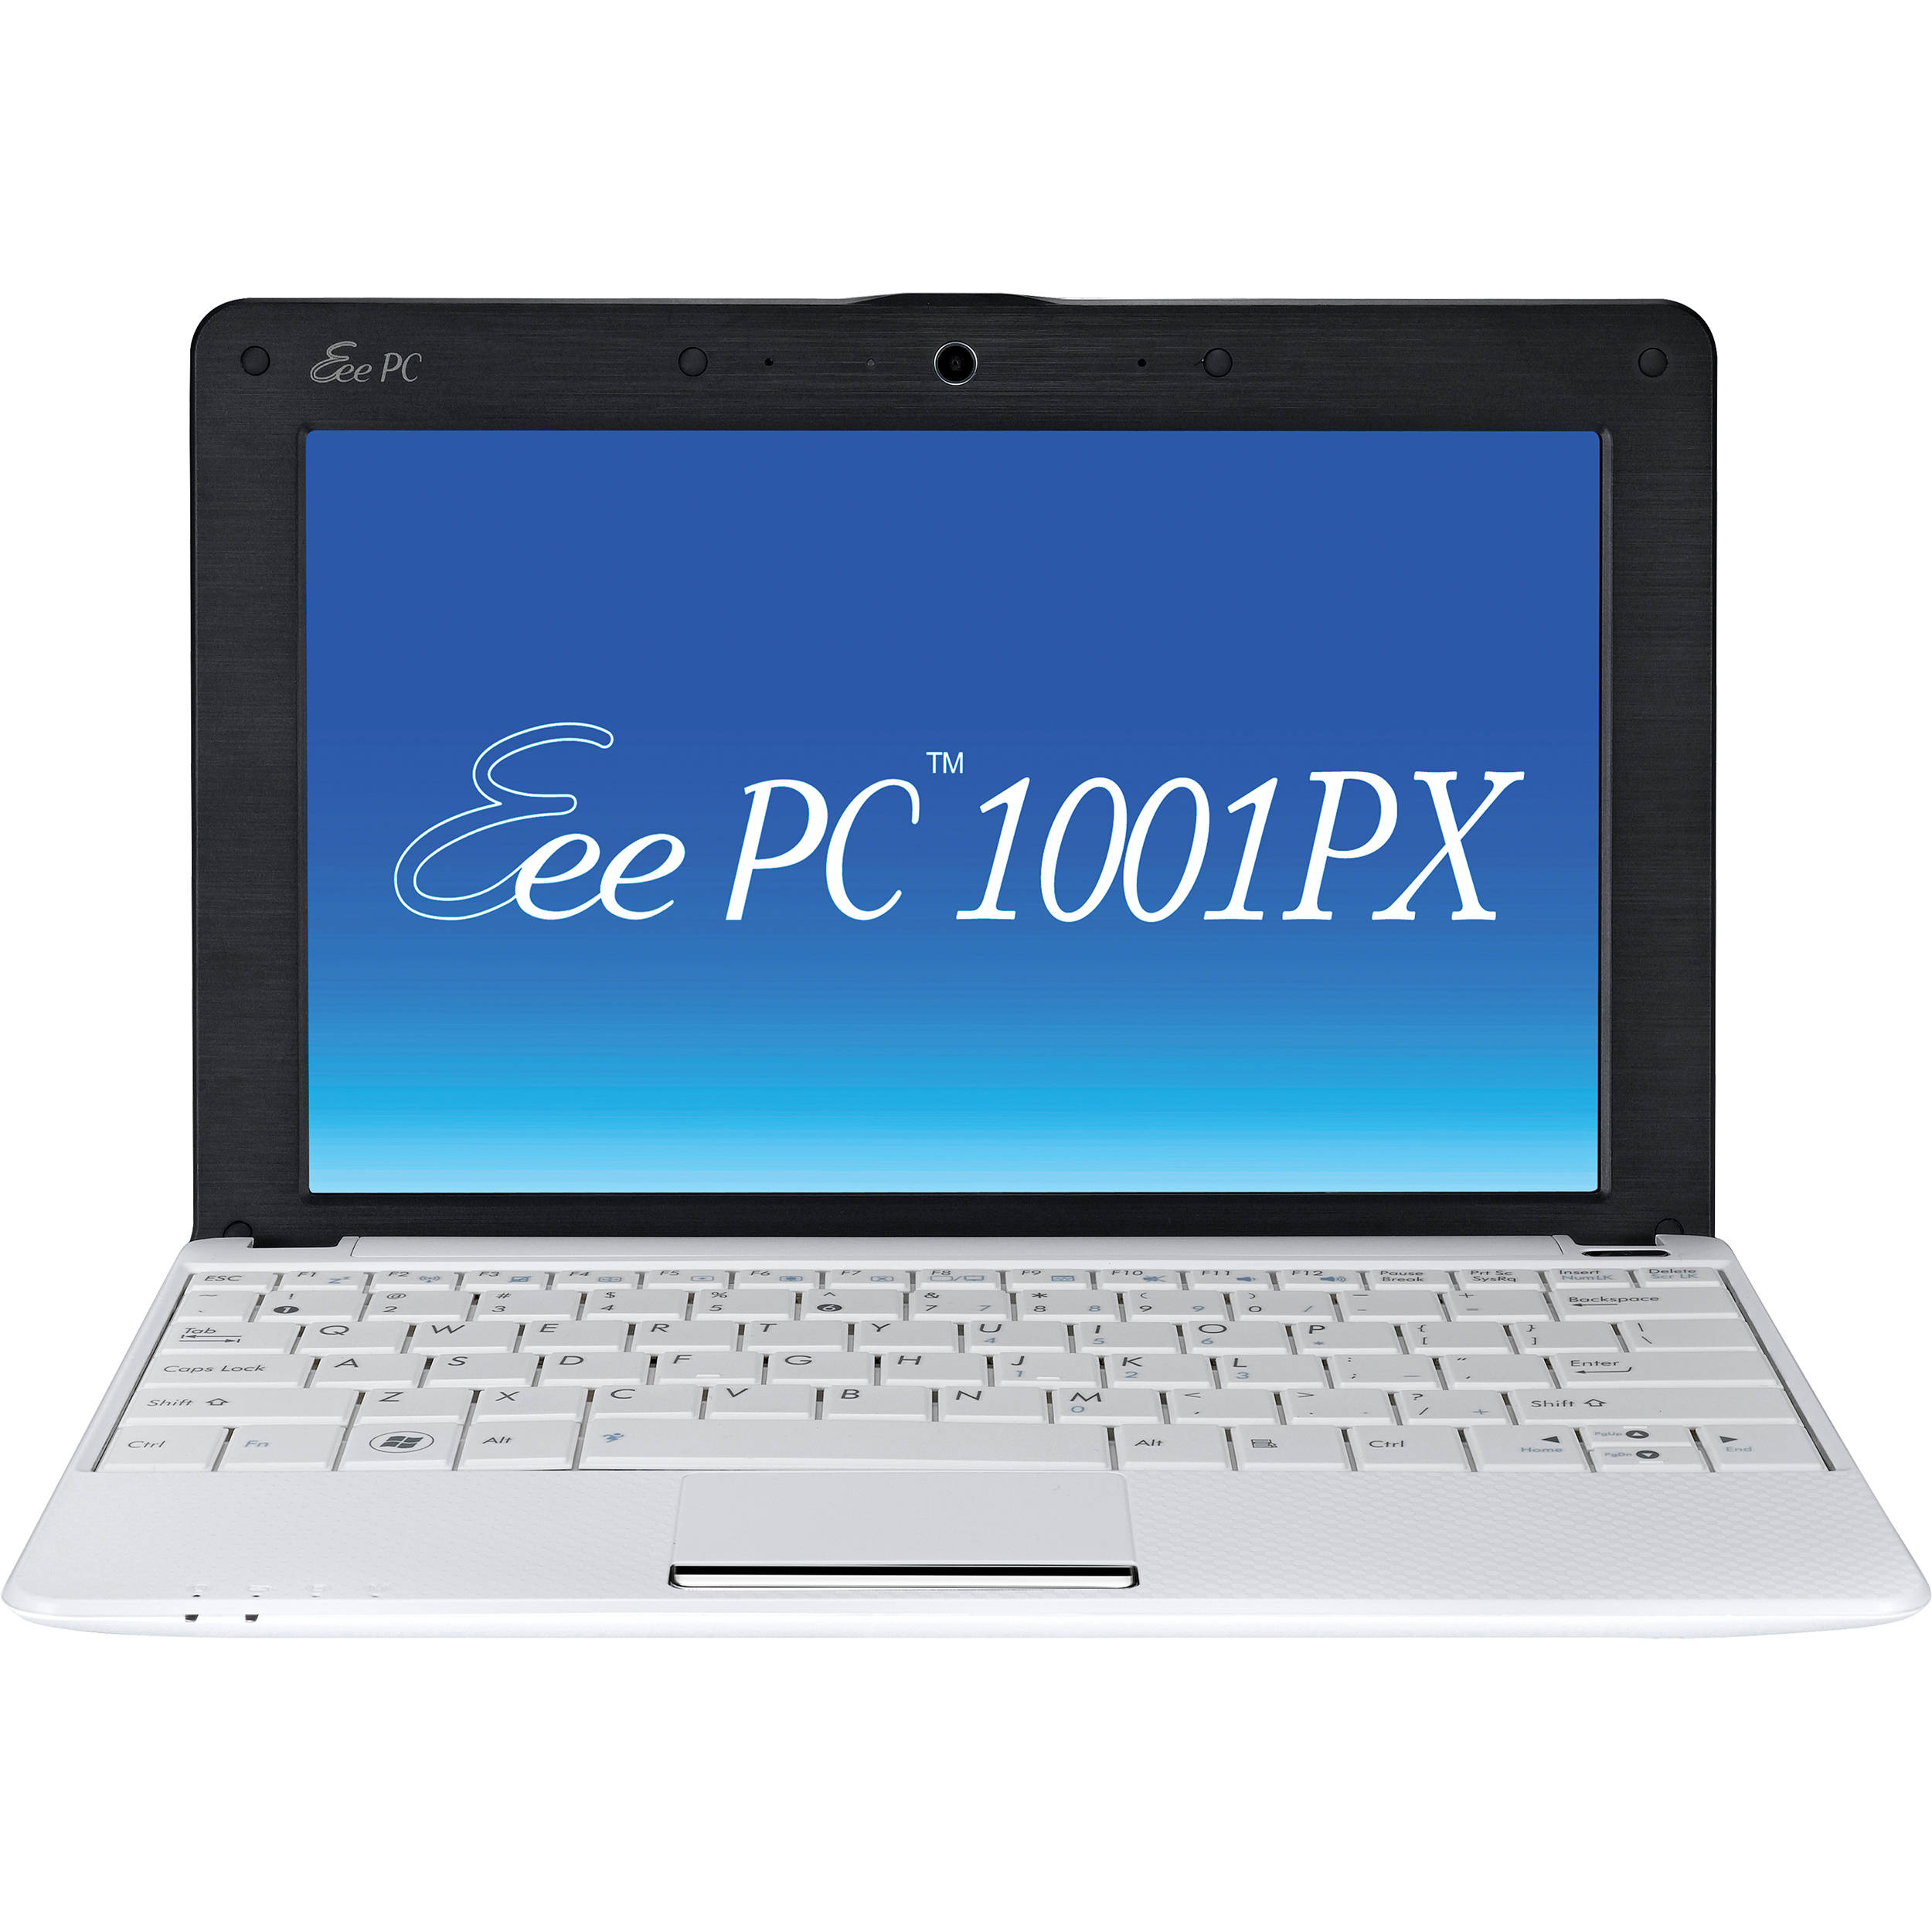 ASUS EEE PC 1001PX NETBOOK AUDIO DRIVERS DOWNLOAD